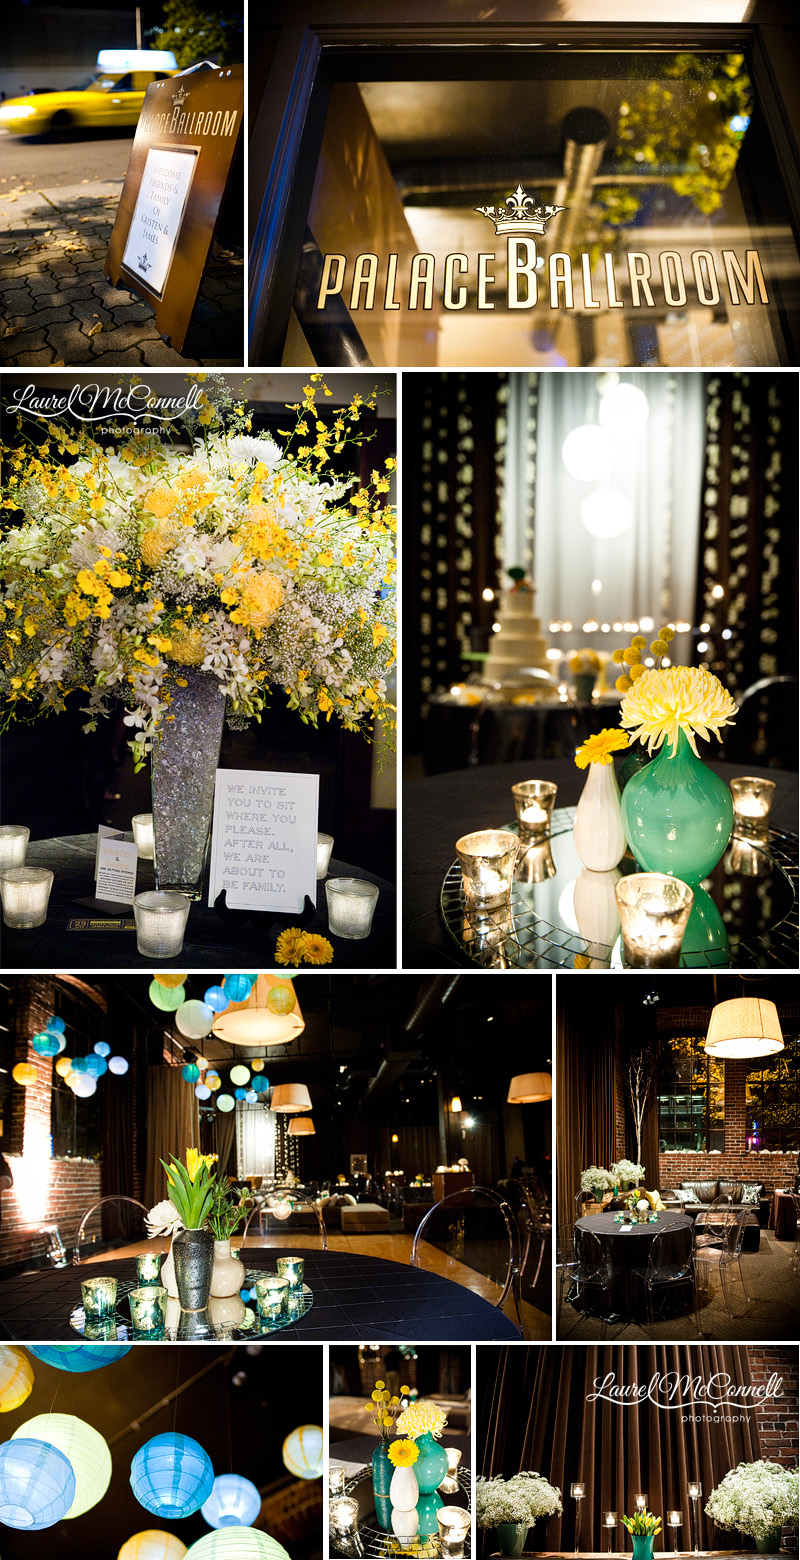 turquoise and yellow wedding reception decor at the palace ballroom